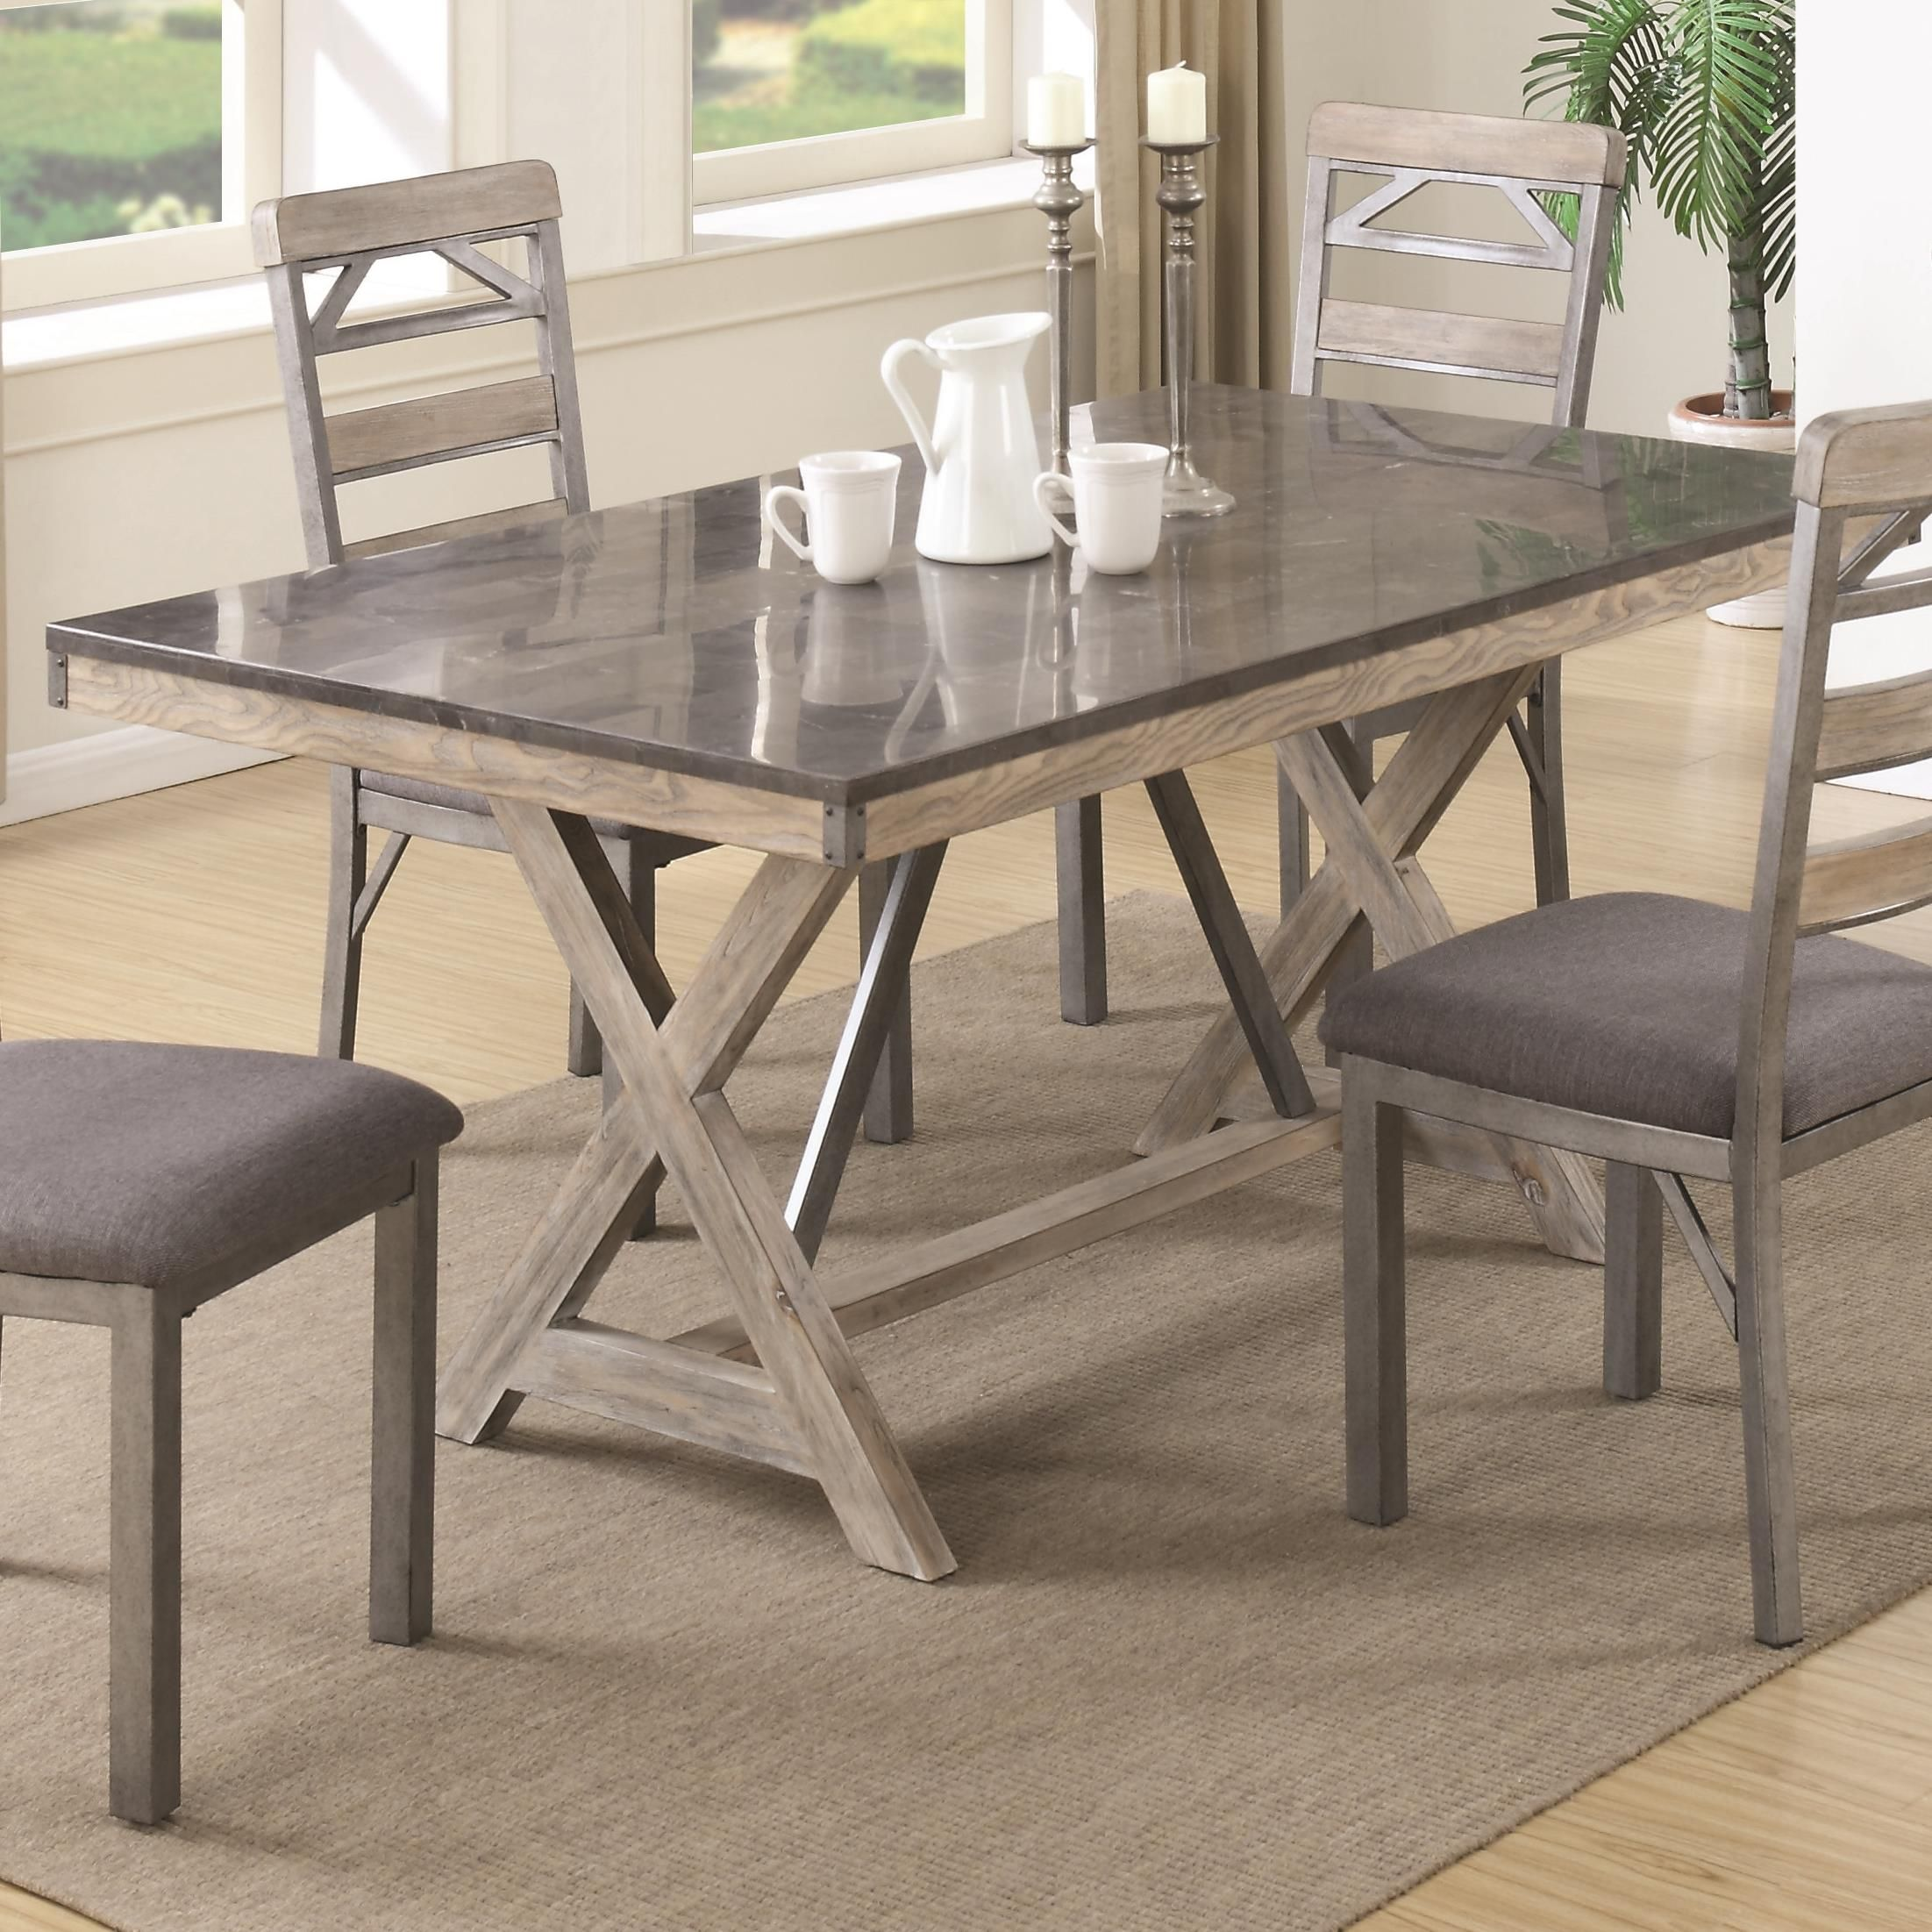 38 X 66 Edmonton Dining Table By Coaster Industrial Dining Room